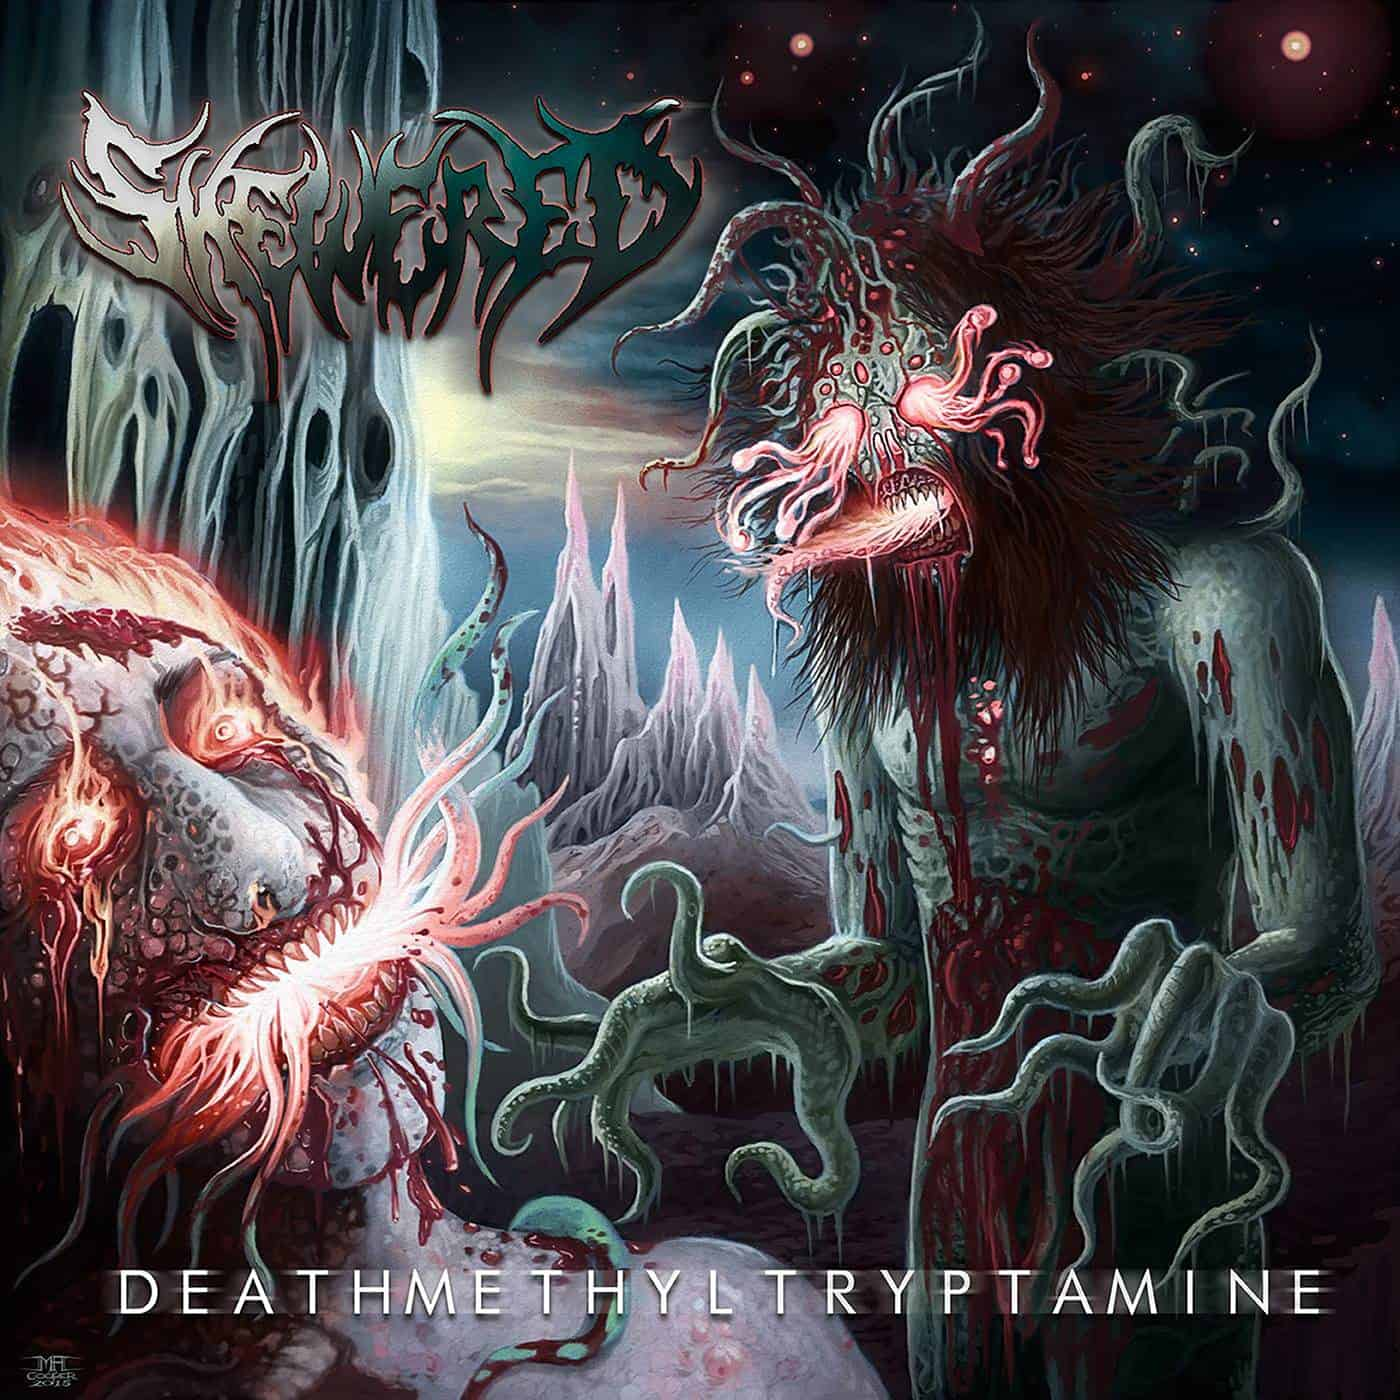 Album Review: Skewered – Deathmethyltryptamine (Stillborn Records)